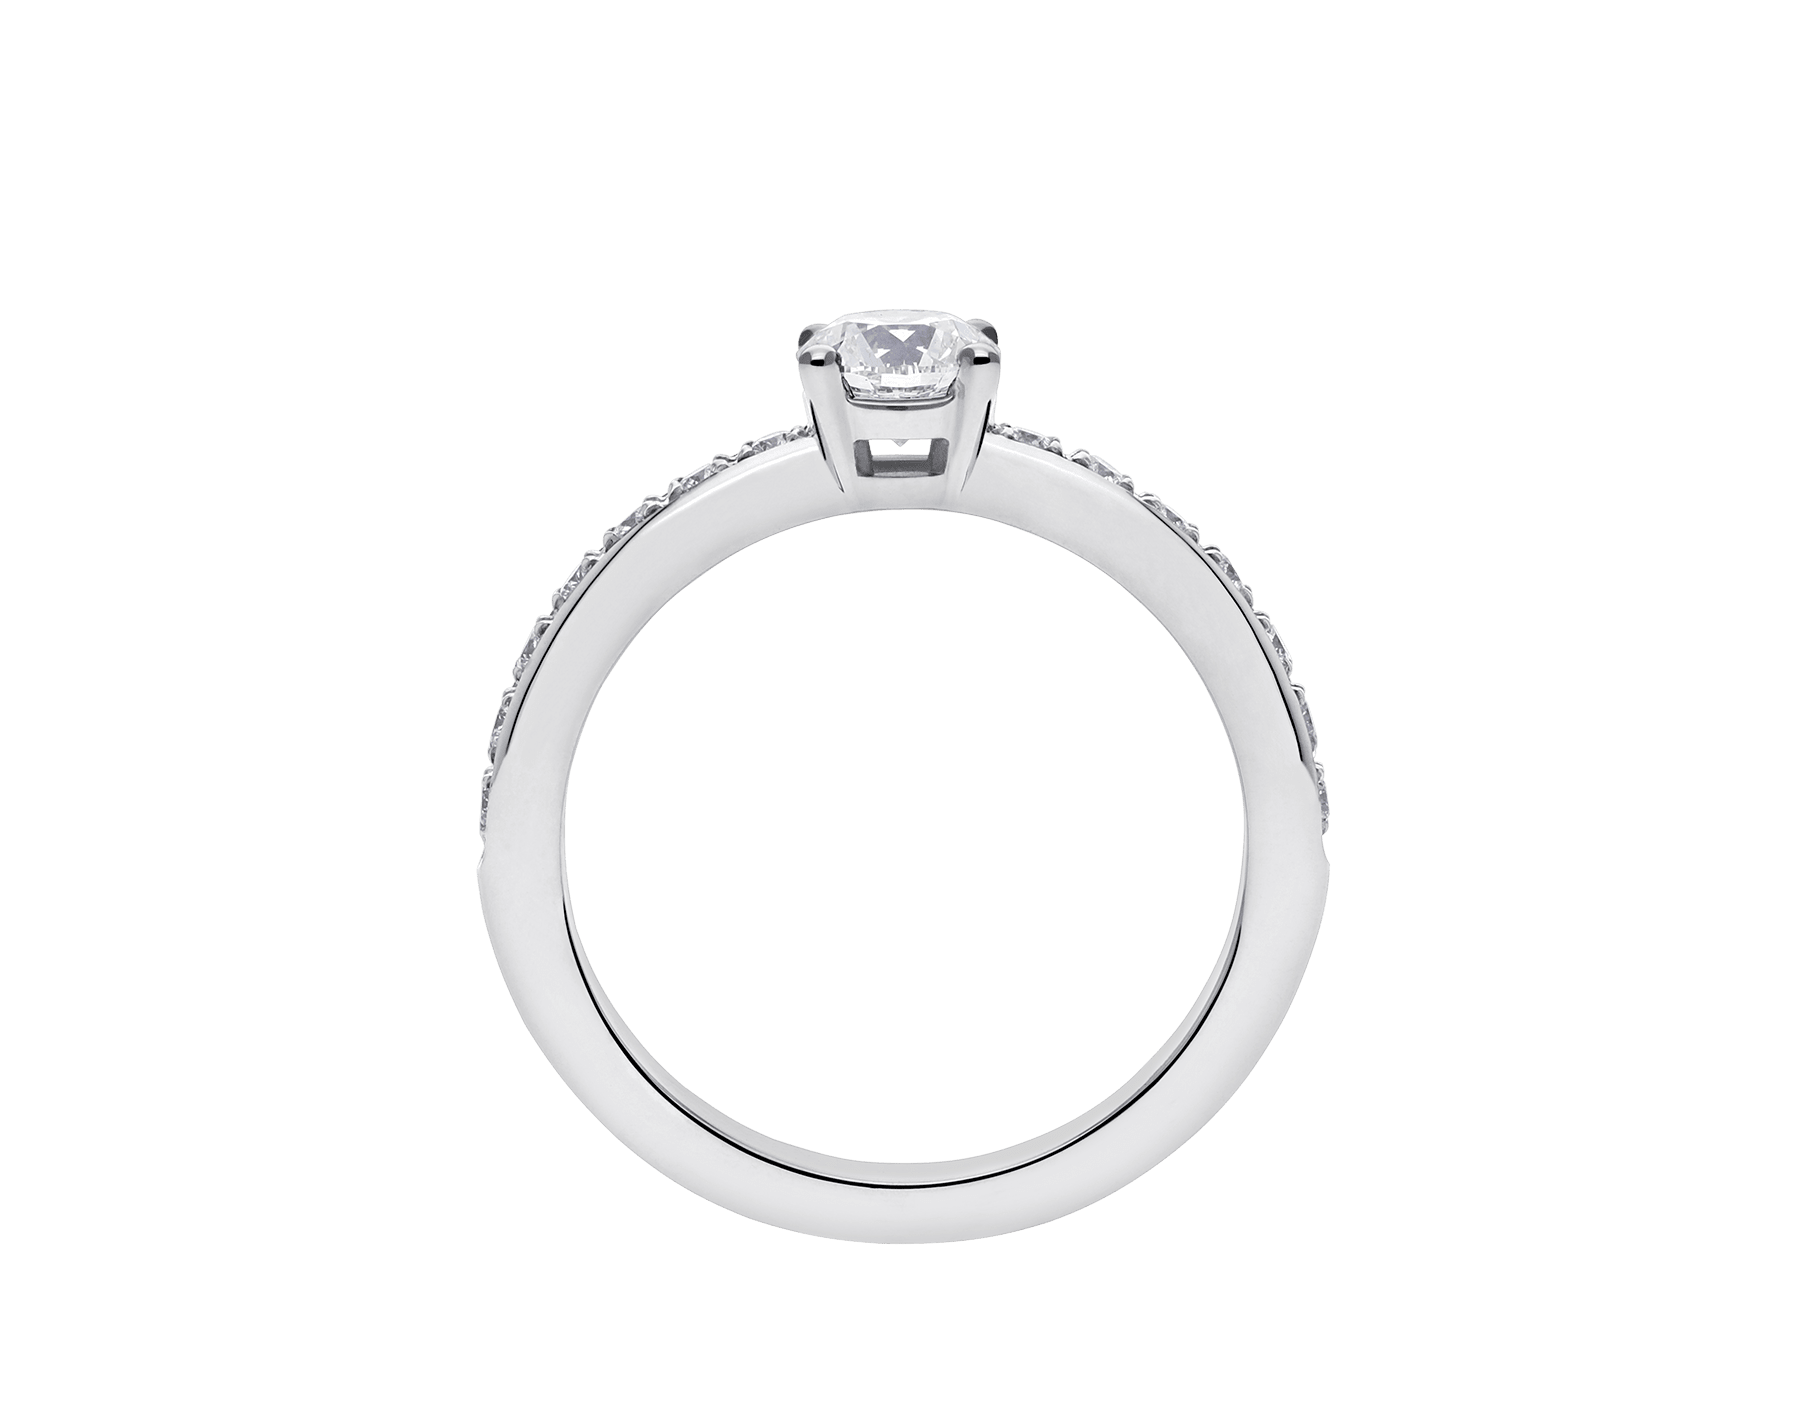 Griffe solitaire ring in platinum with a round brilliant cut diamond and pavé diamonds 340252 image 4